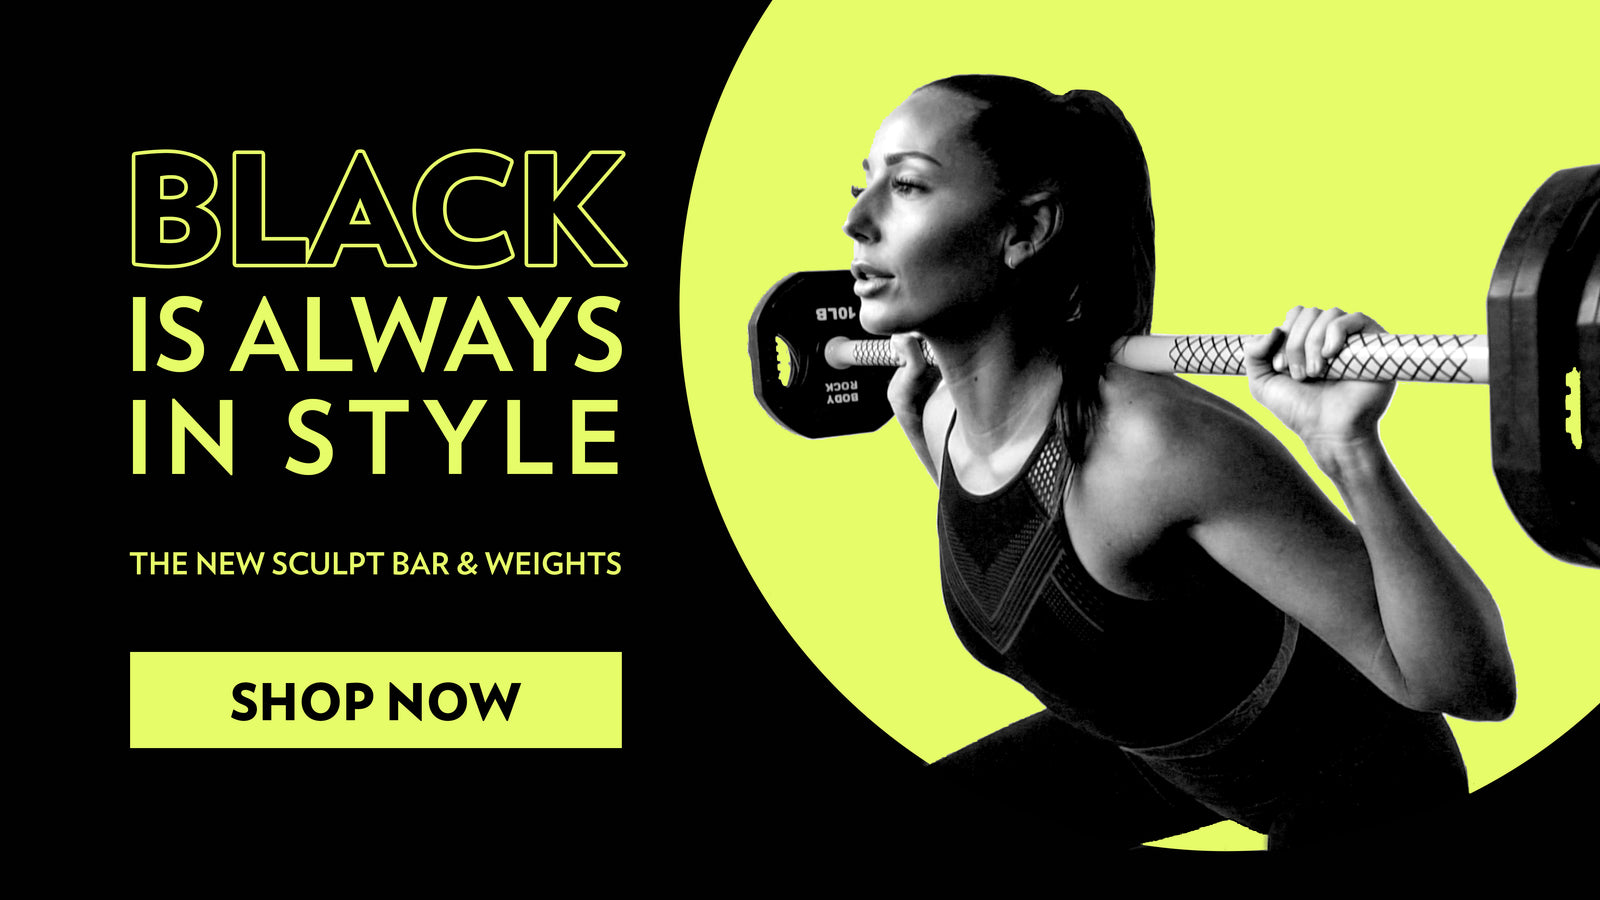 a6e61214279 Image of banner featuring Bodyrock Trainer weight lifting a Bodyrock Black  Sculpt Barbell with Black weights